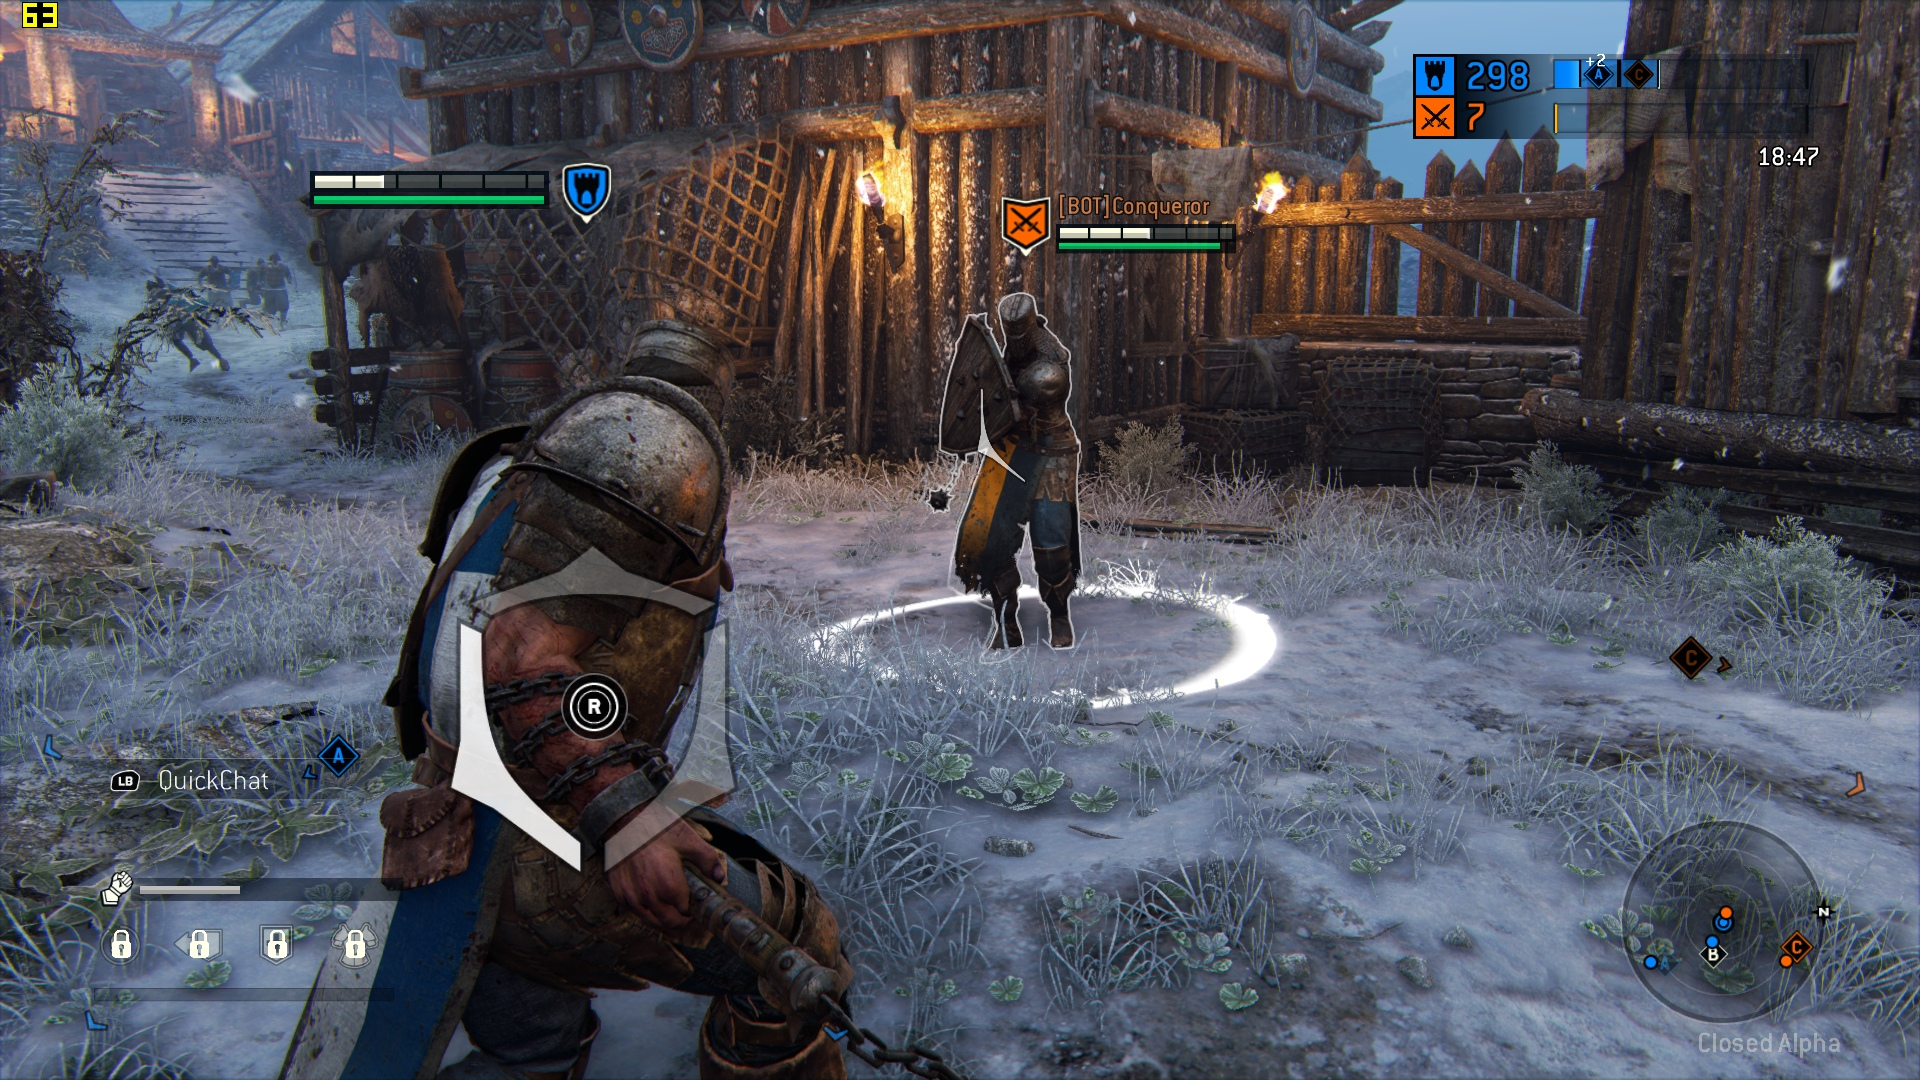 ForHonor-GTX-960-OC-1080p-pcgh